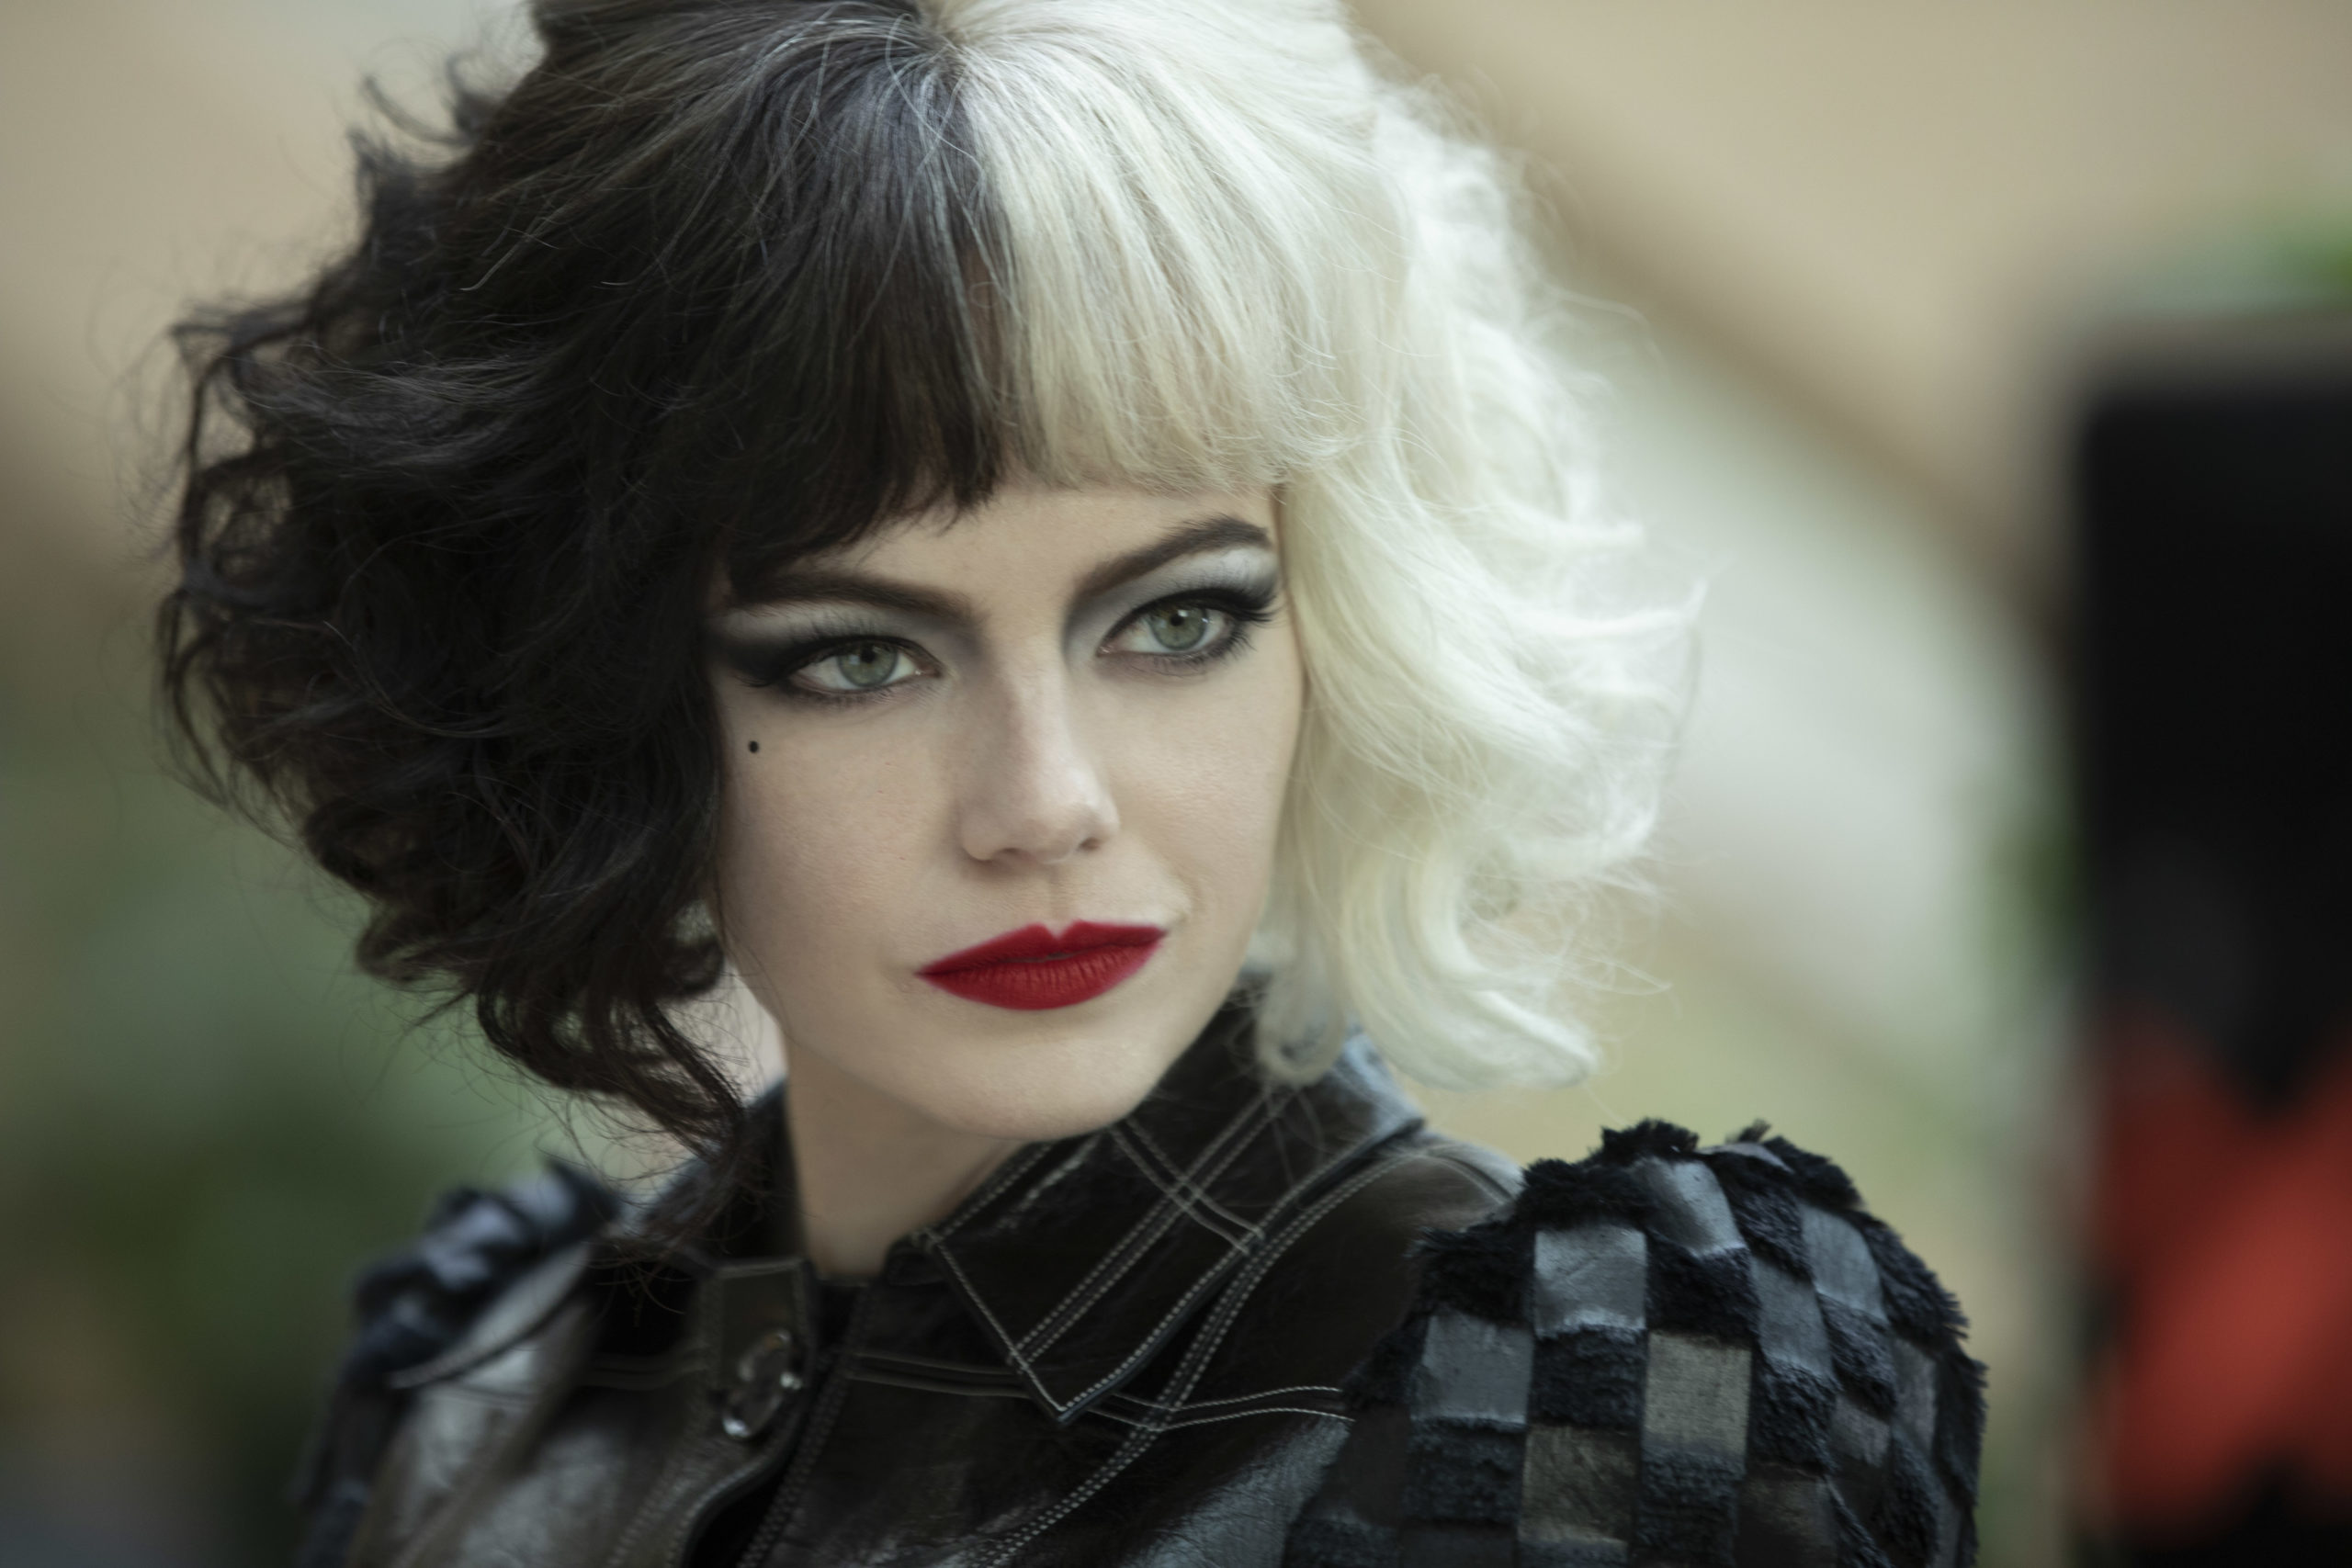 """Trailer For Disney's Cruella Shows A Young Woman That Is """"A Little Bit Mad"""""""